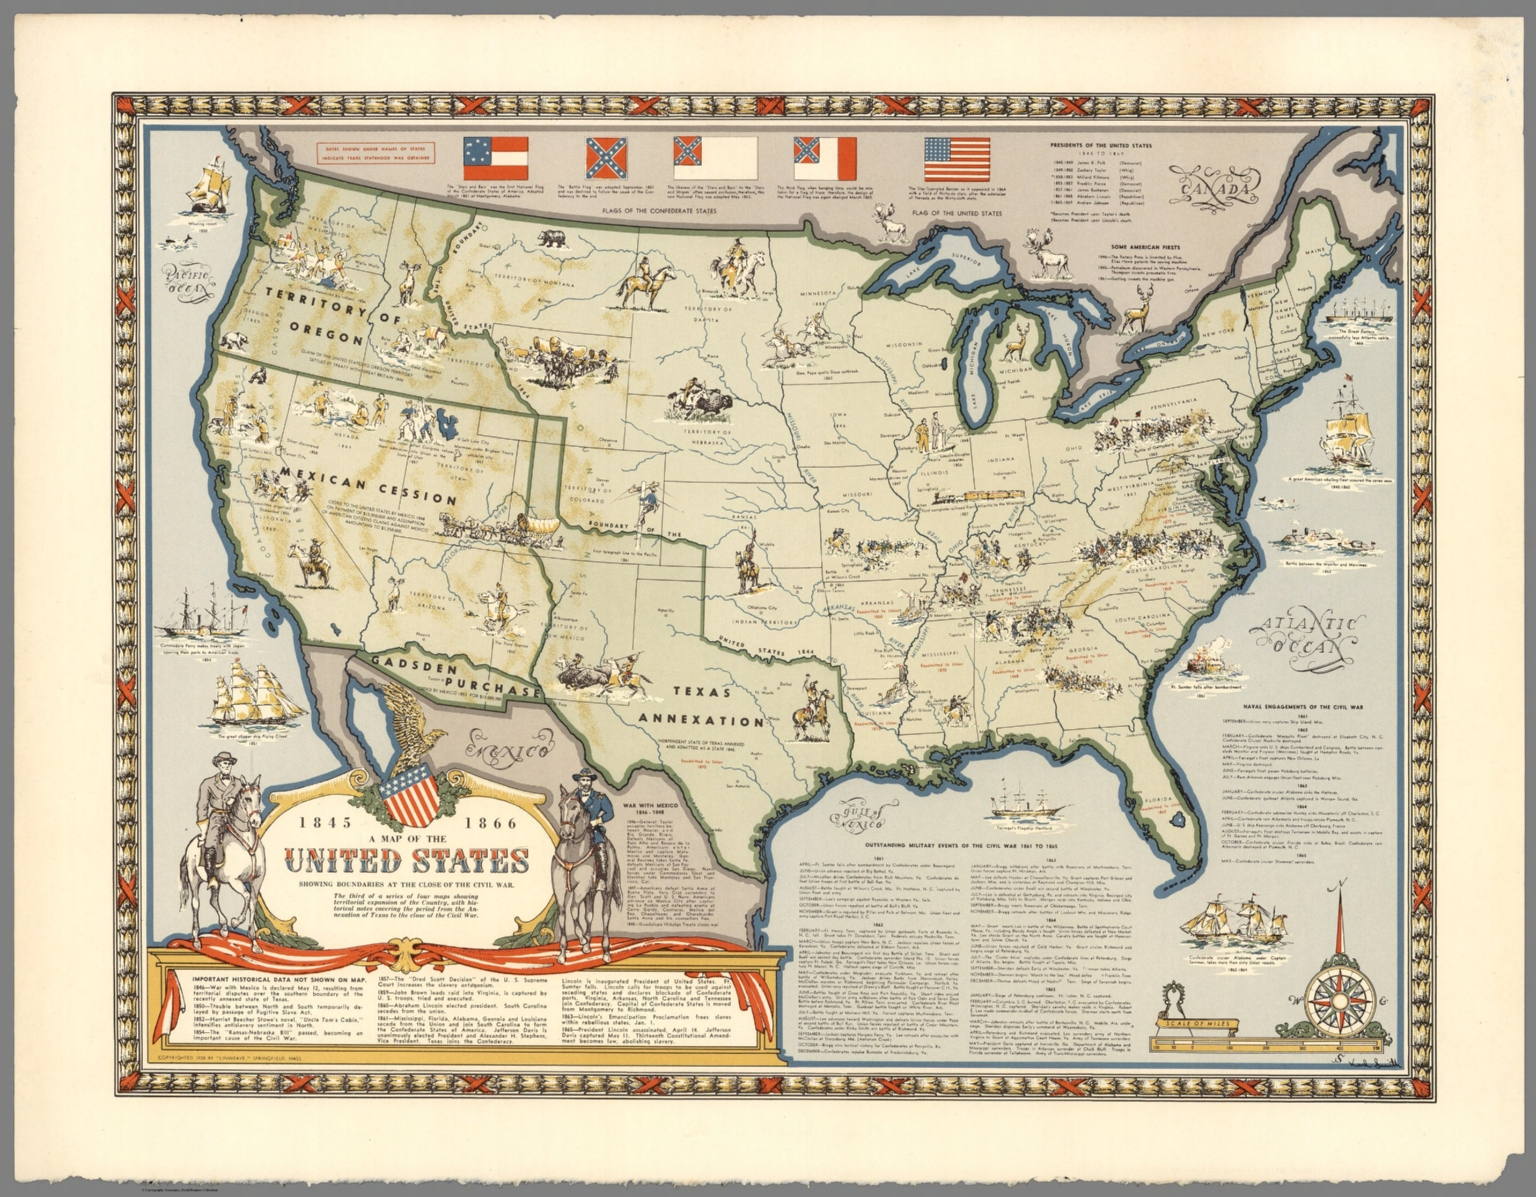 Map of the United States Showing Boundaries 18451866 David